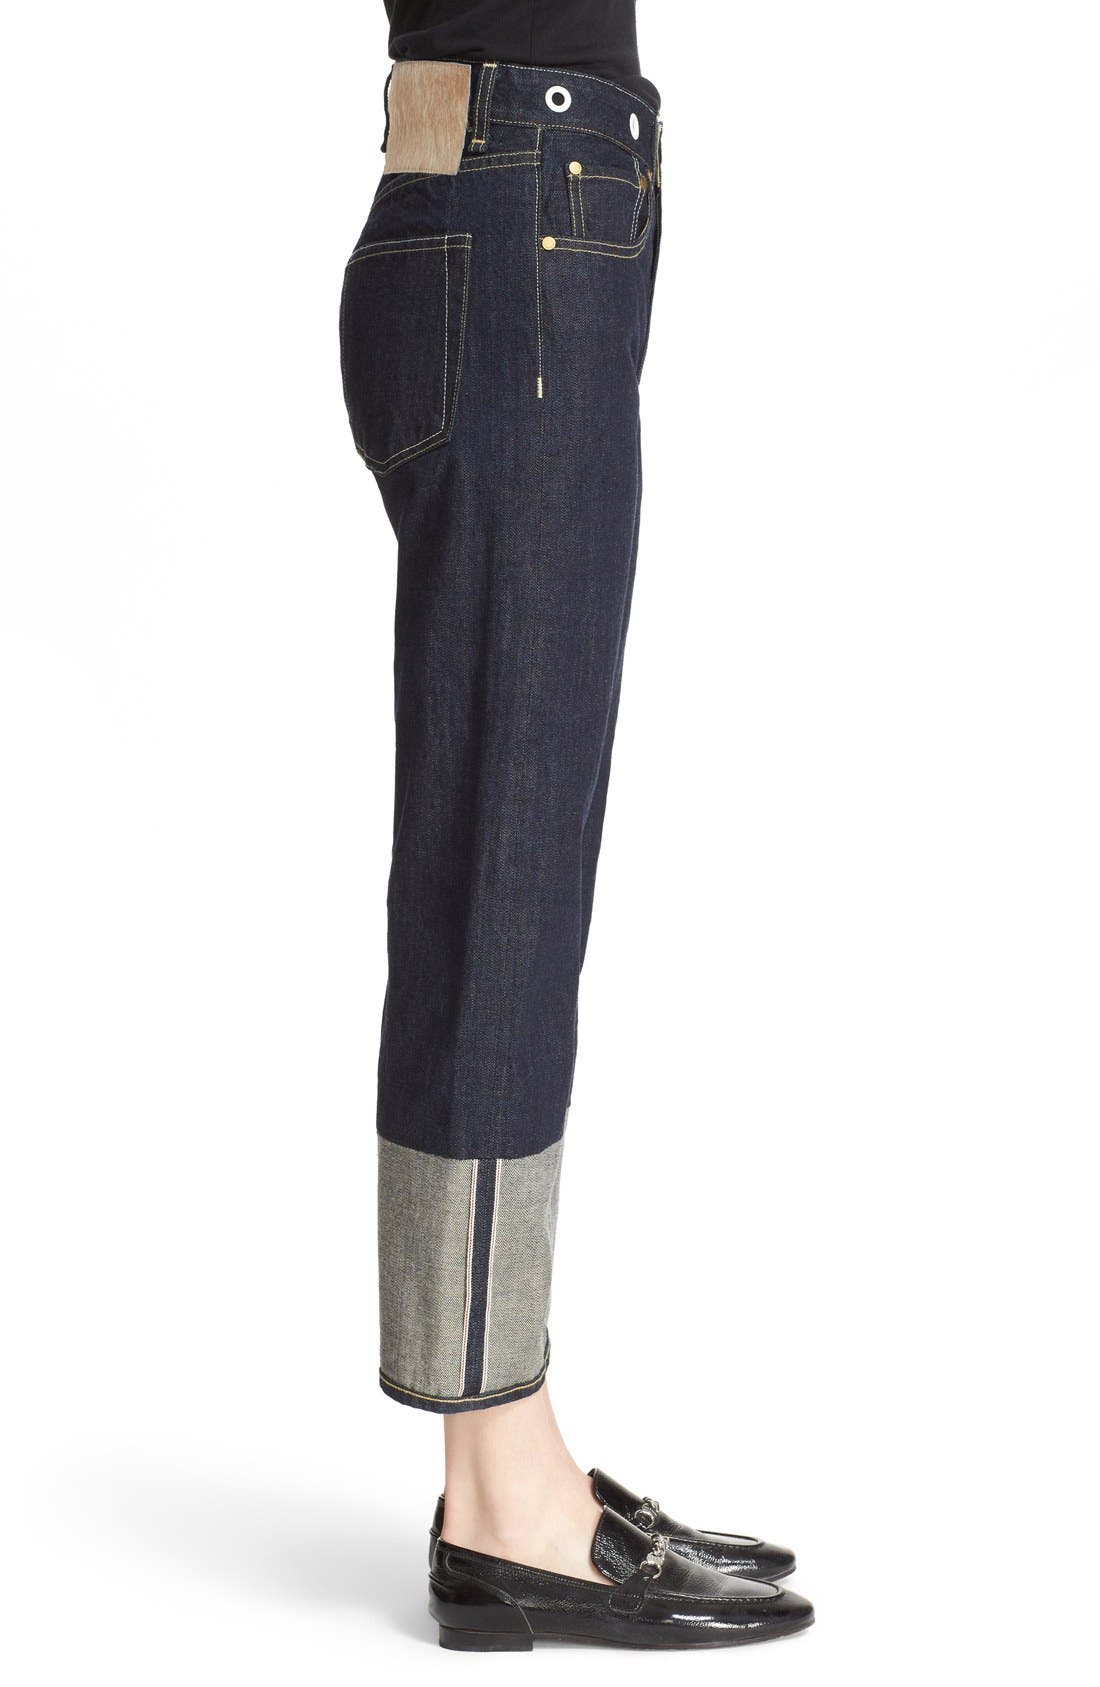 RBW16 High Rise Crop Jeans,                             Alternate thumbnail 3, color,                             470